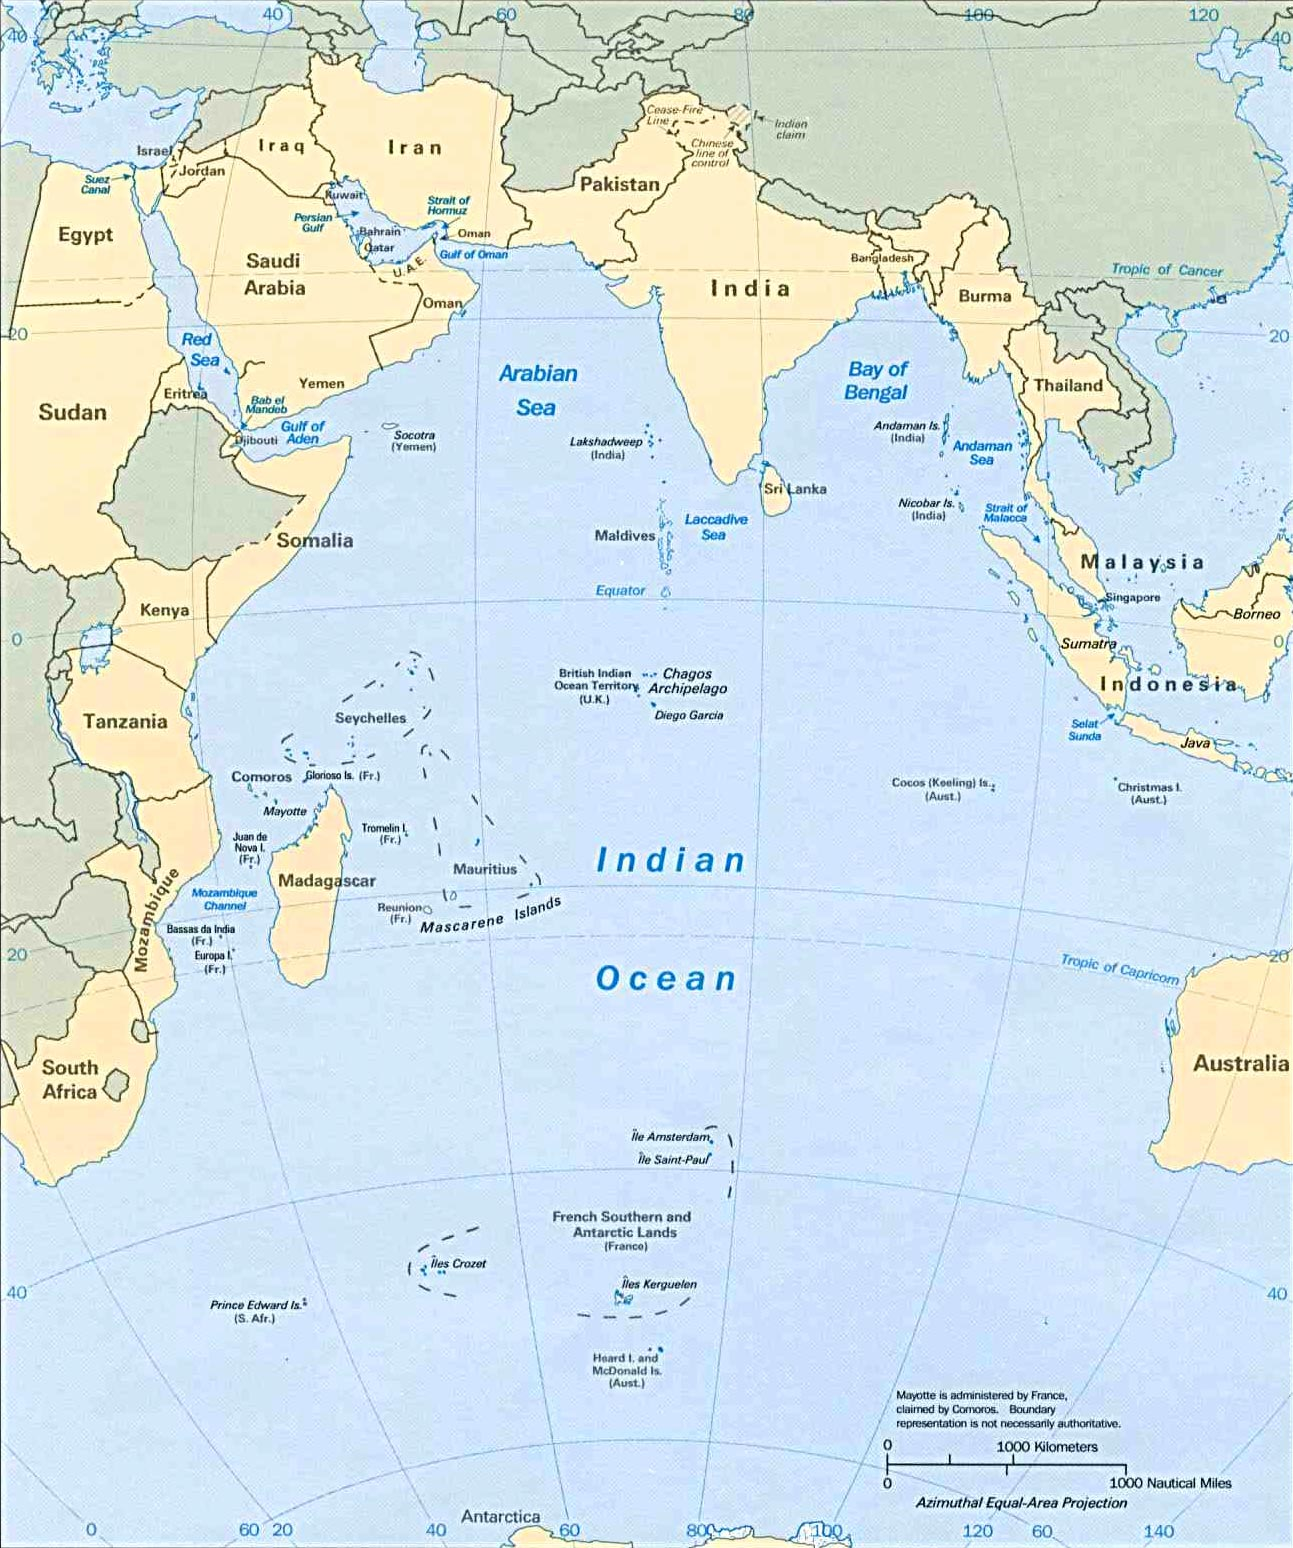 Sea levels rising in parts of Indian Ocean, according to ...